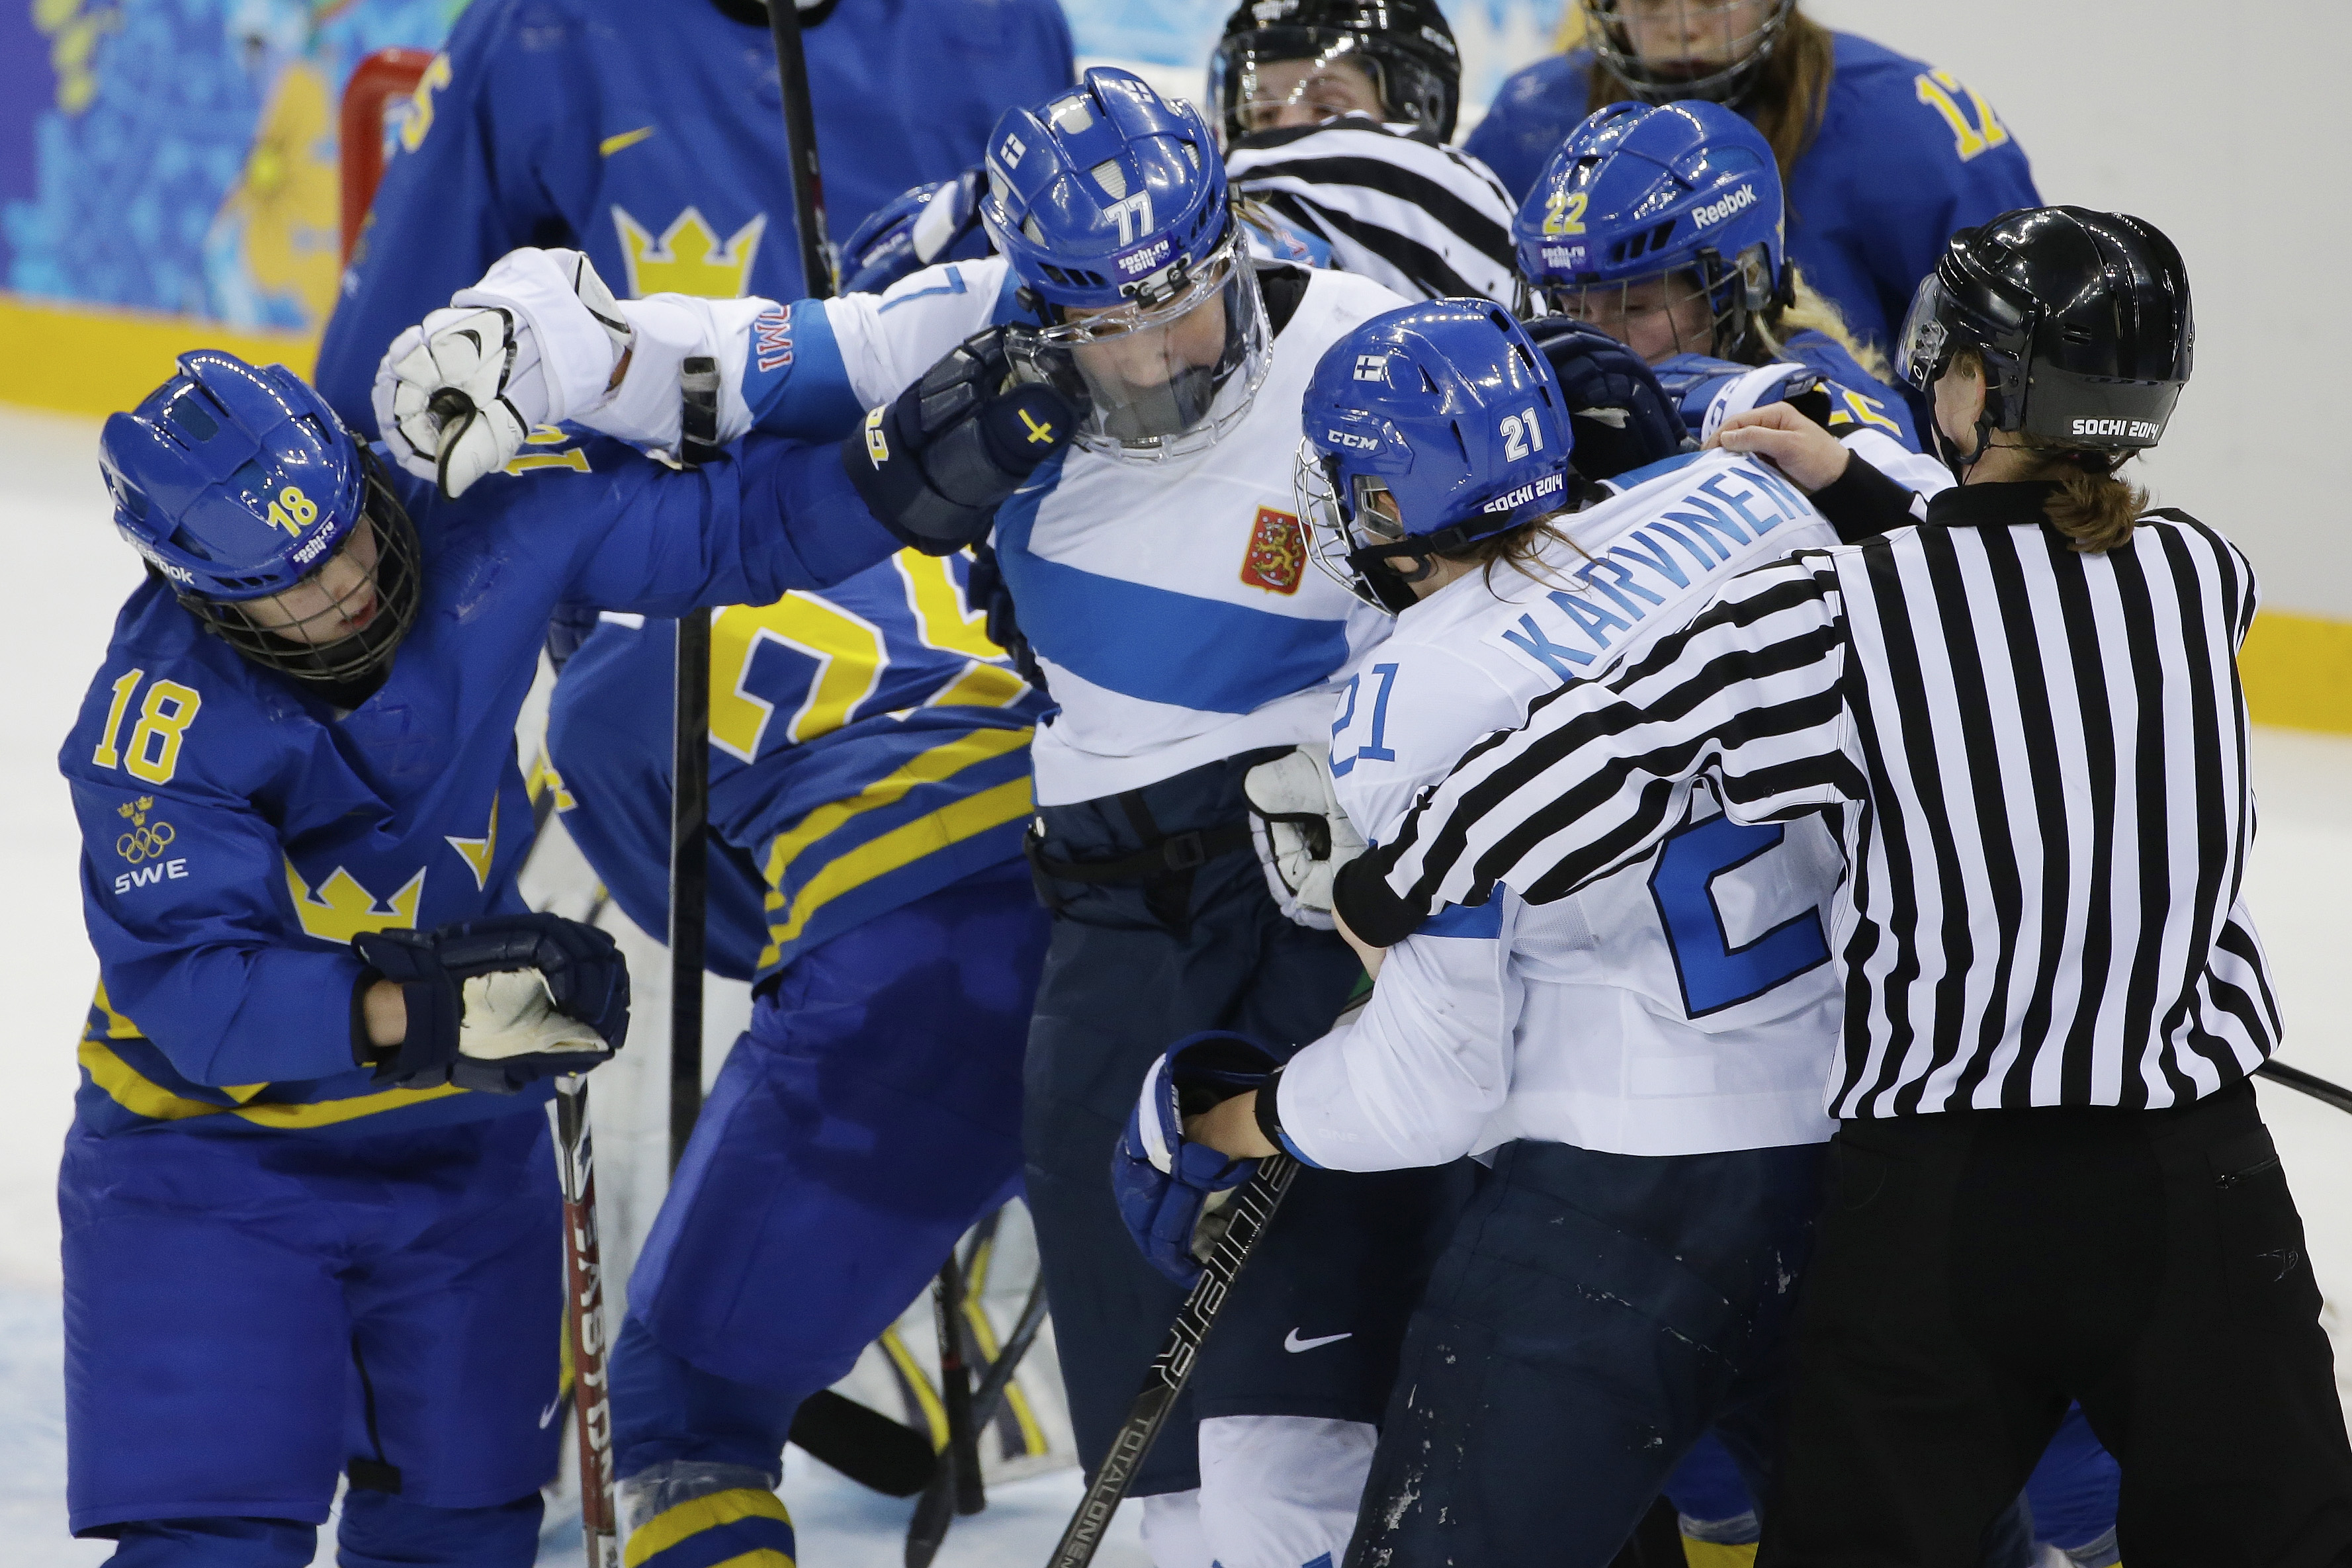 Members of Team Sweden and Team Finland mix it up during the 2014 Winter Olympics women's quarterfinal ice hockey game at Shayba Arena, Saturday, Feb. 15, 2014, in Sochi, Russia. (AP Photo/Matt Slocum)